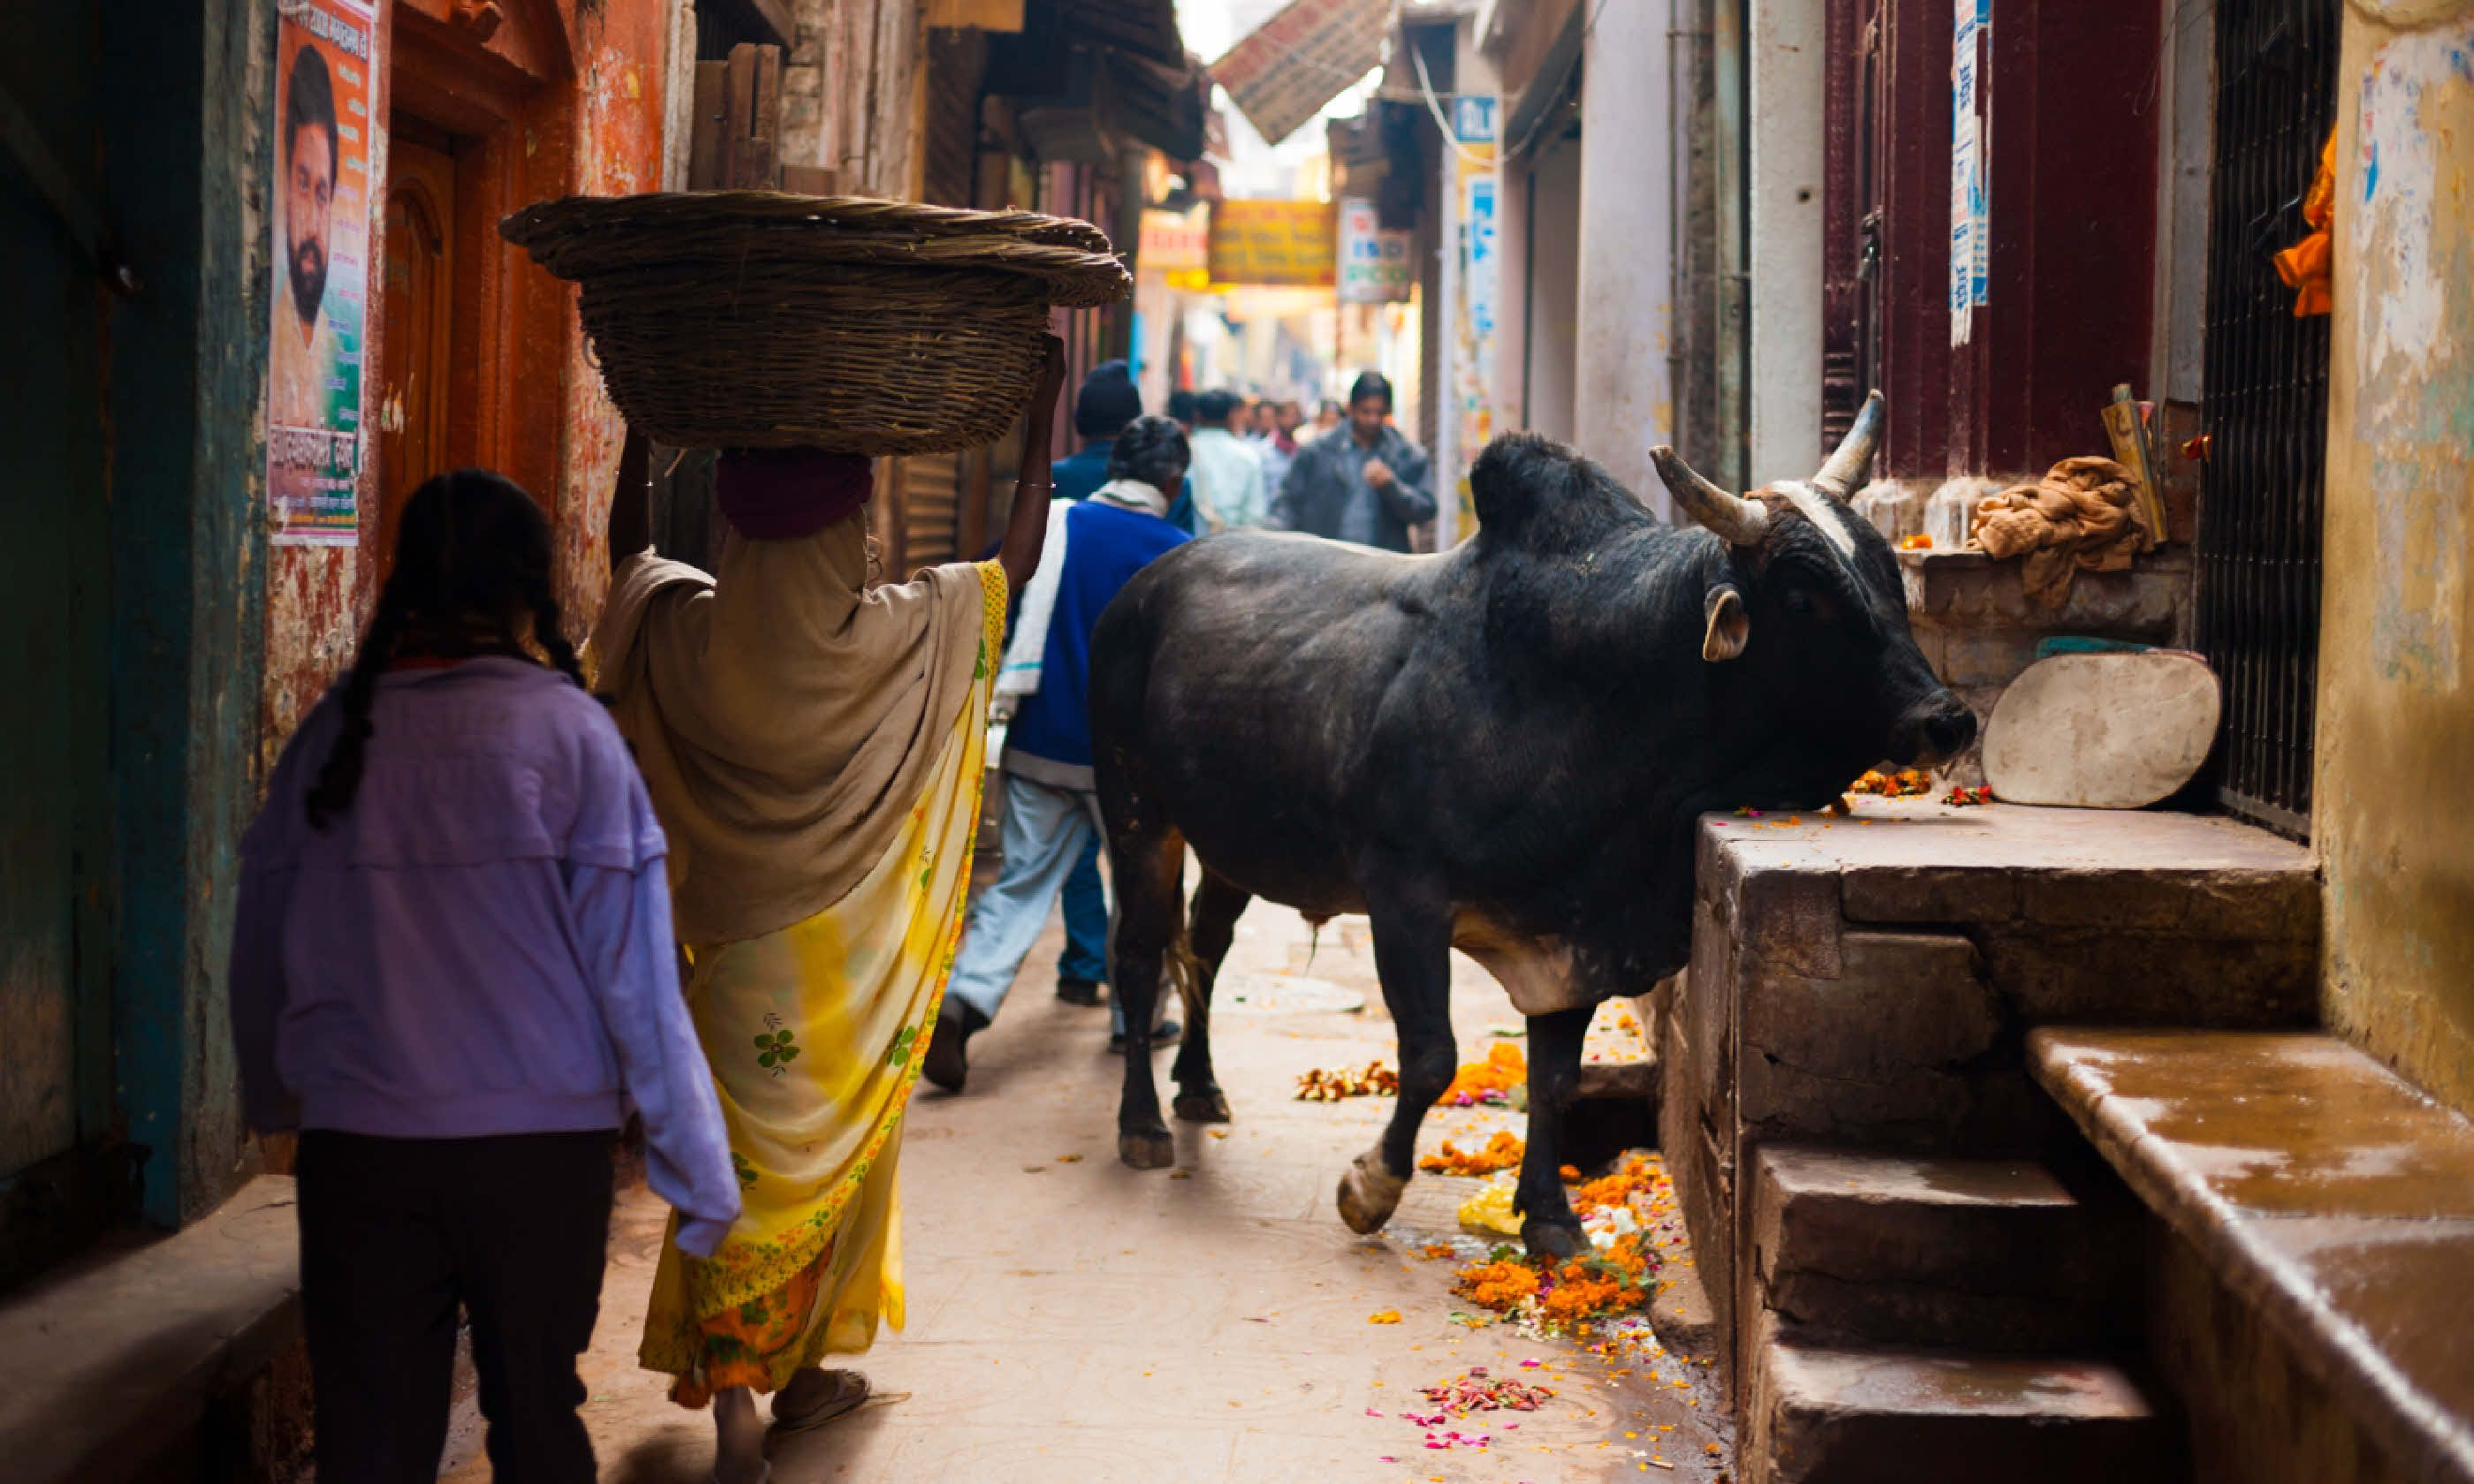 A holy black cow blocks a narrow alley (Shutterstock)